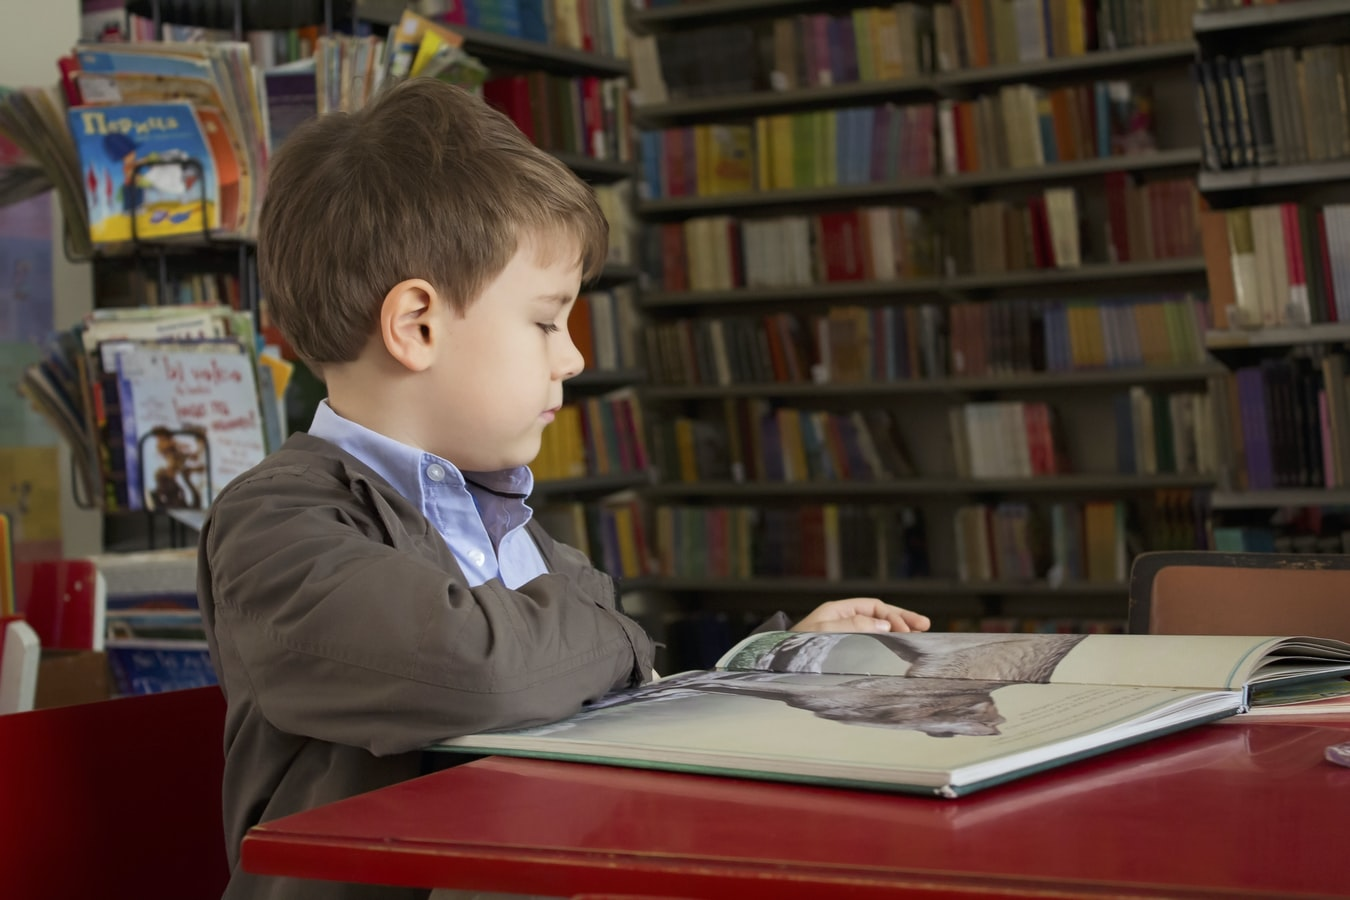 boy reading a book at a library